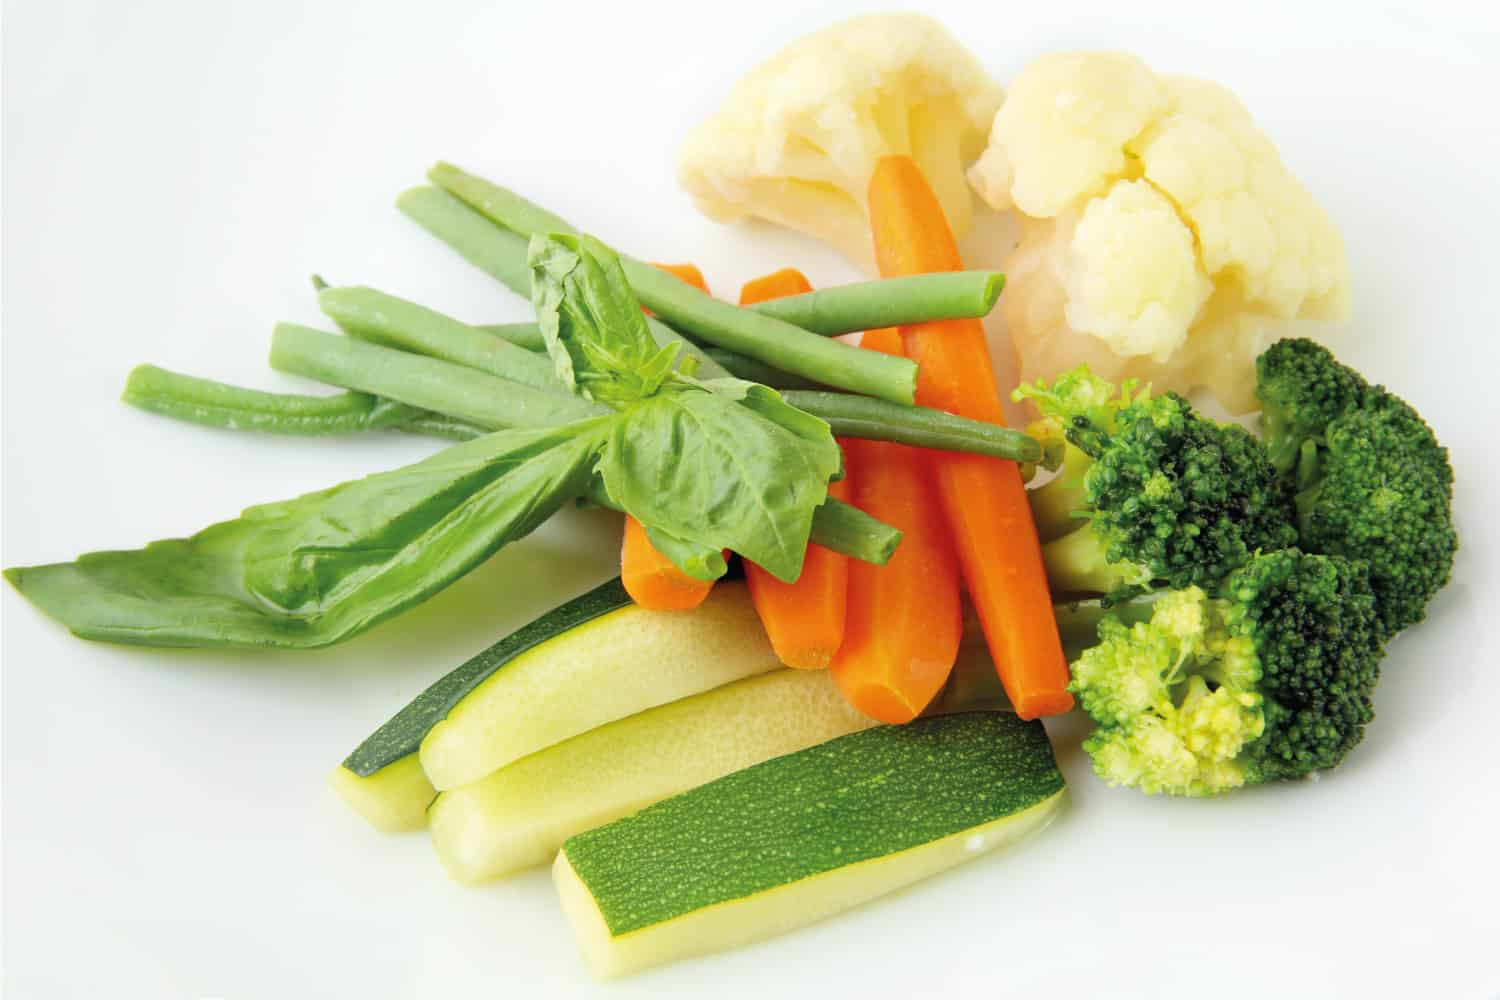 Steamed sliced carrots, brocolli, cauliflower, zucchini and beans